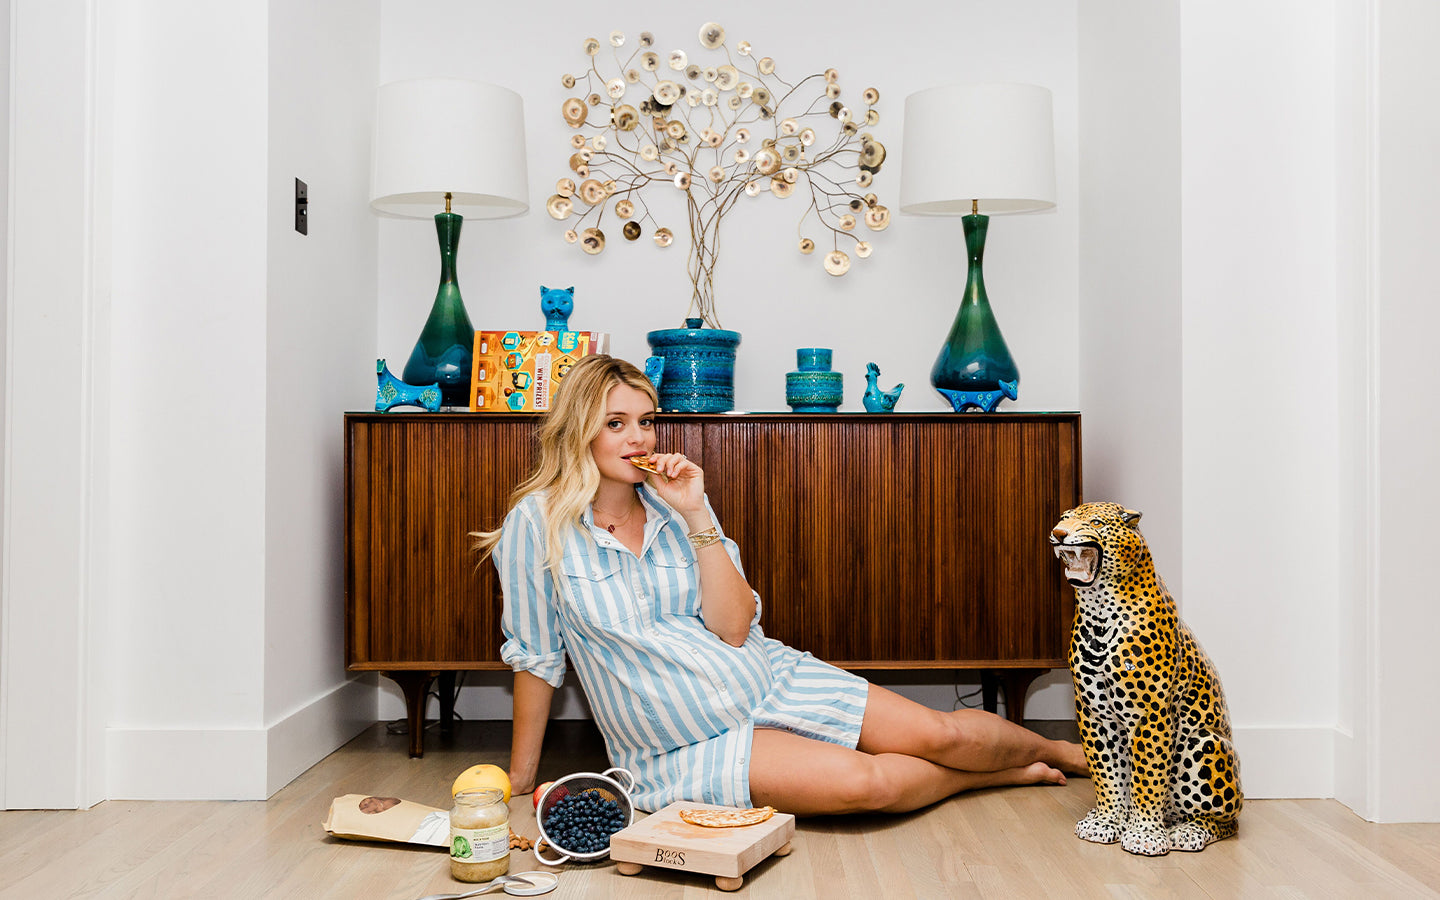 Daphne Oz, Tv Host, Entrepreneur, and Author, on the Secret Sauce of Life